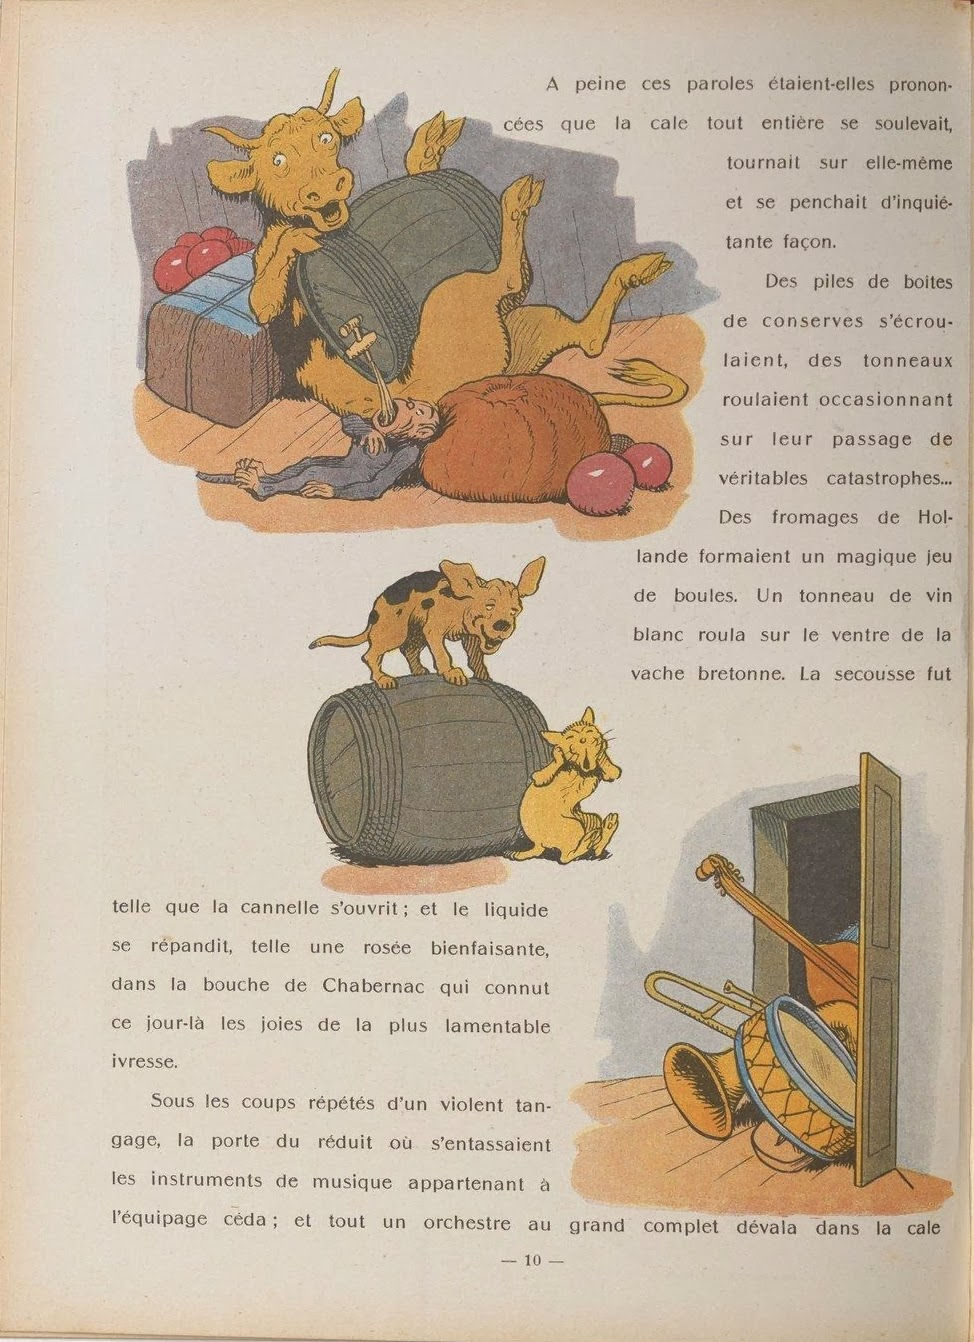 3x 1930s comic scenes from Gedeon book featuring anthropomorphic animals between French text